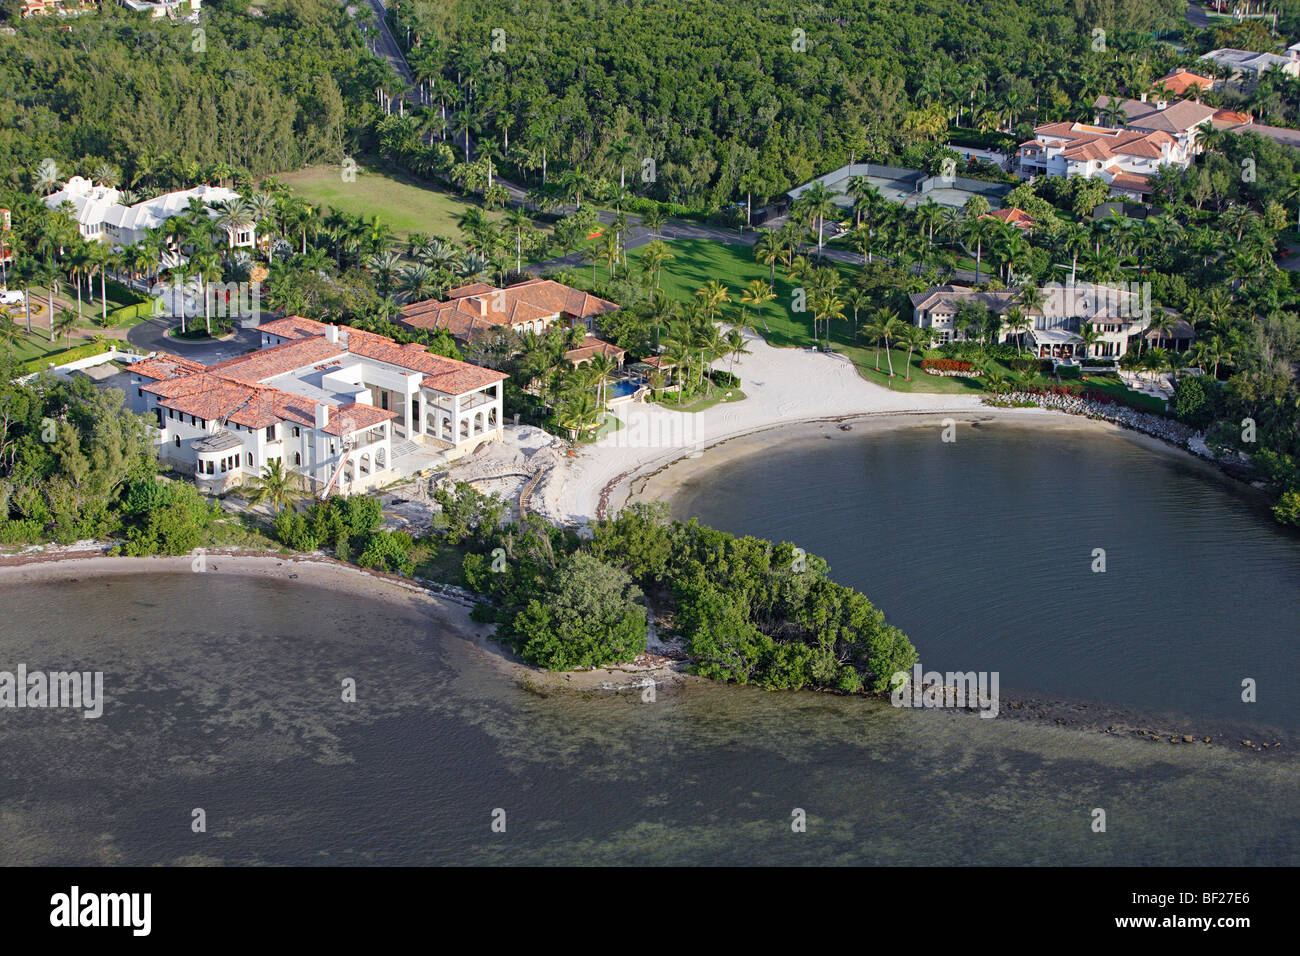 Aerial view of a luxurious villa at a small bay, Coral Gables, Miami, Florida, USA Stock Photo